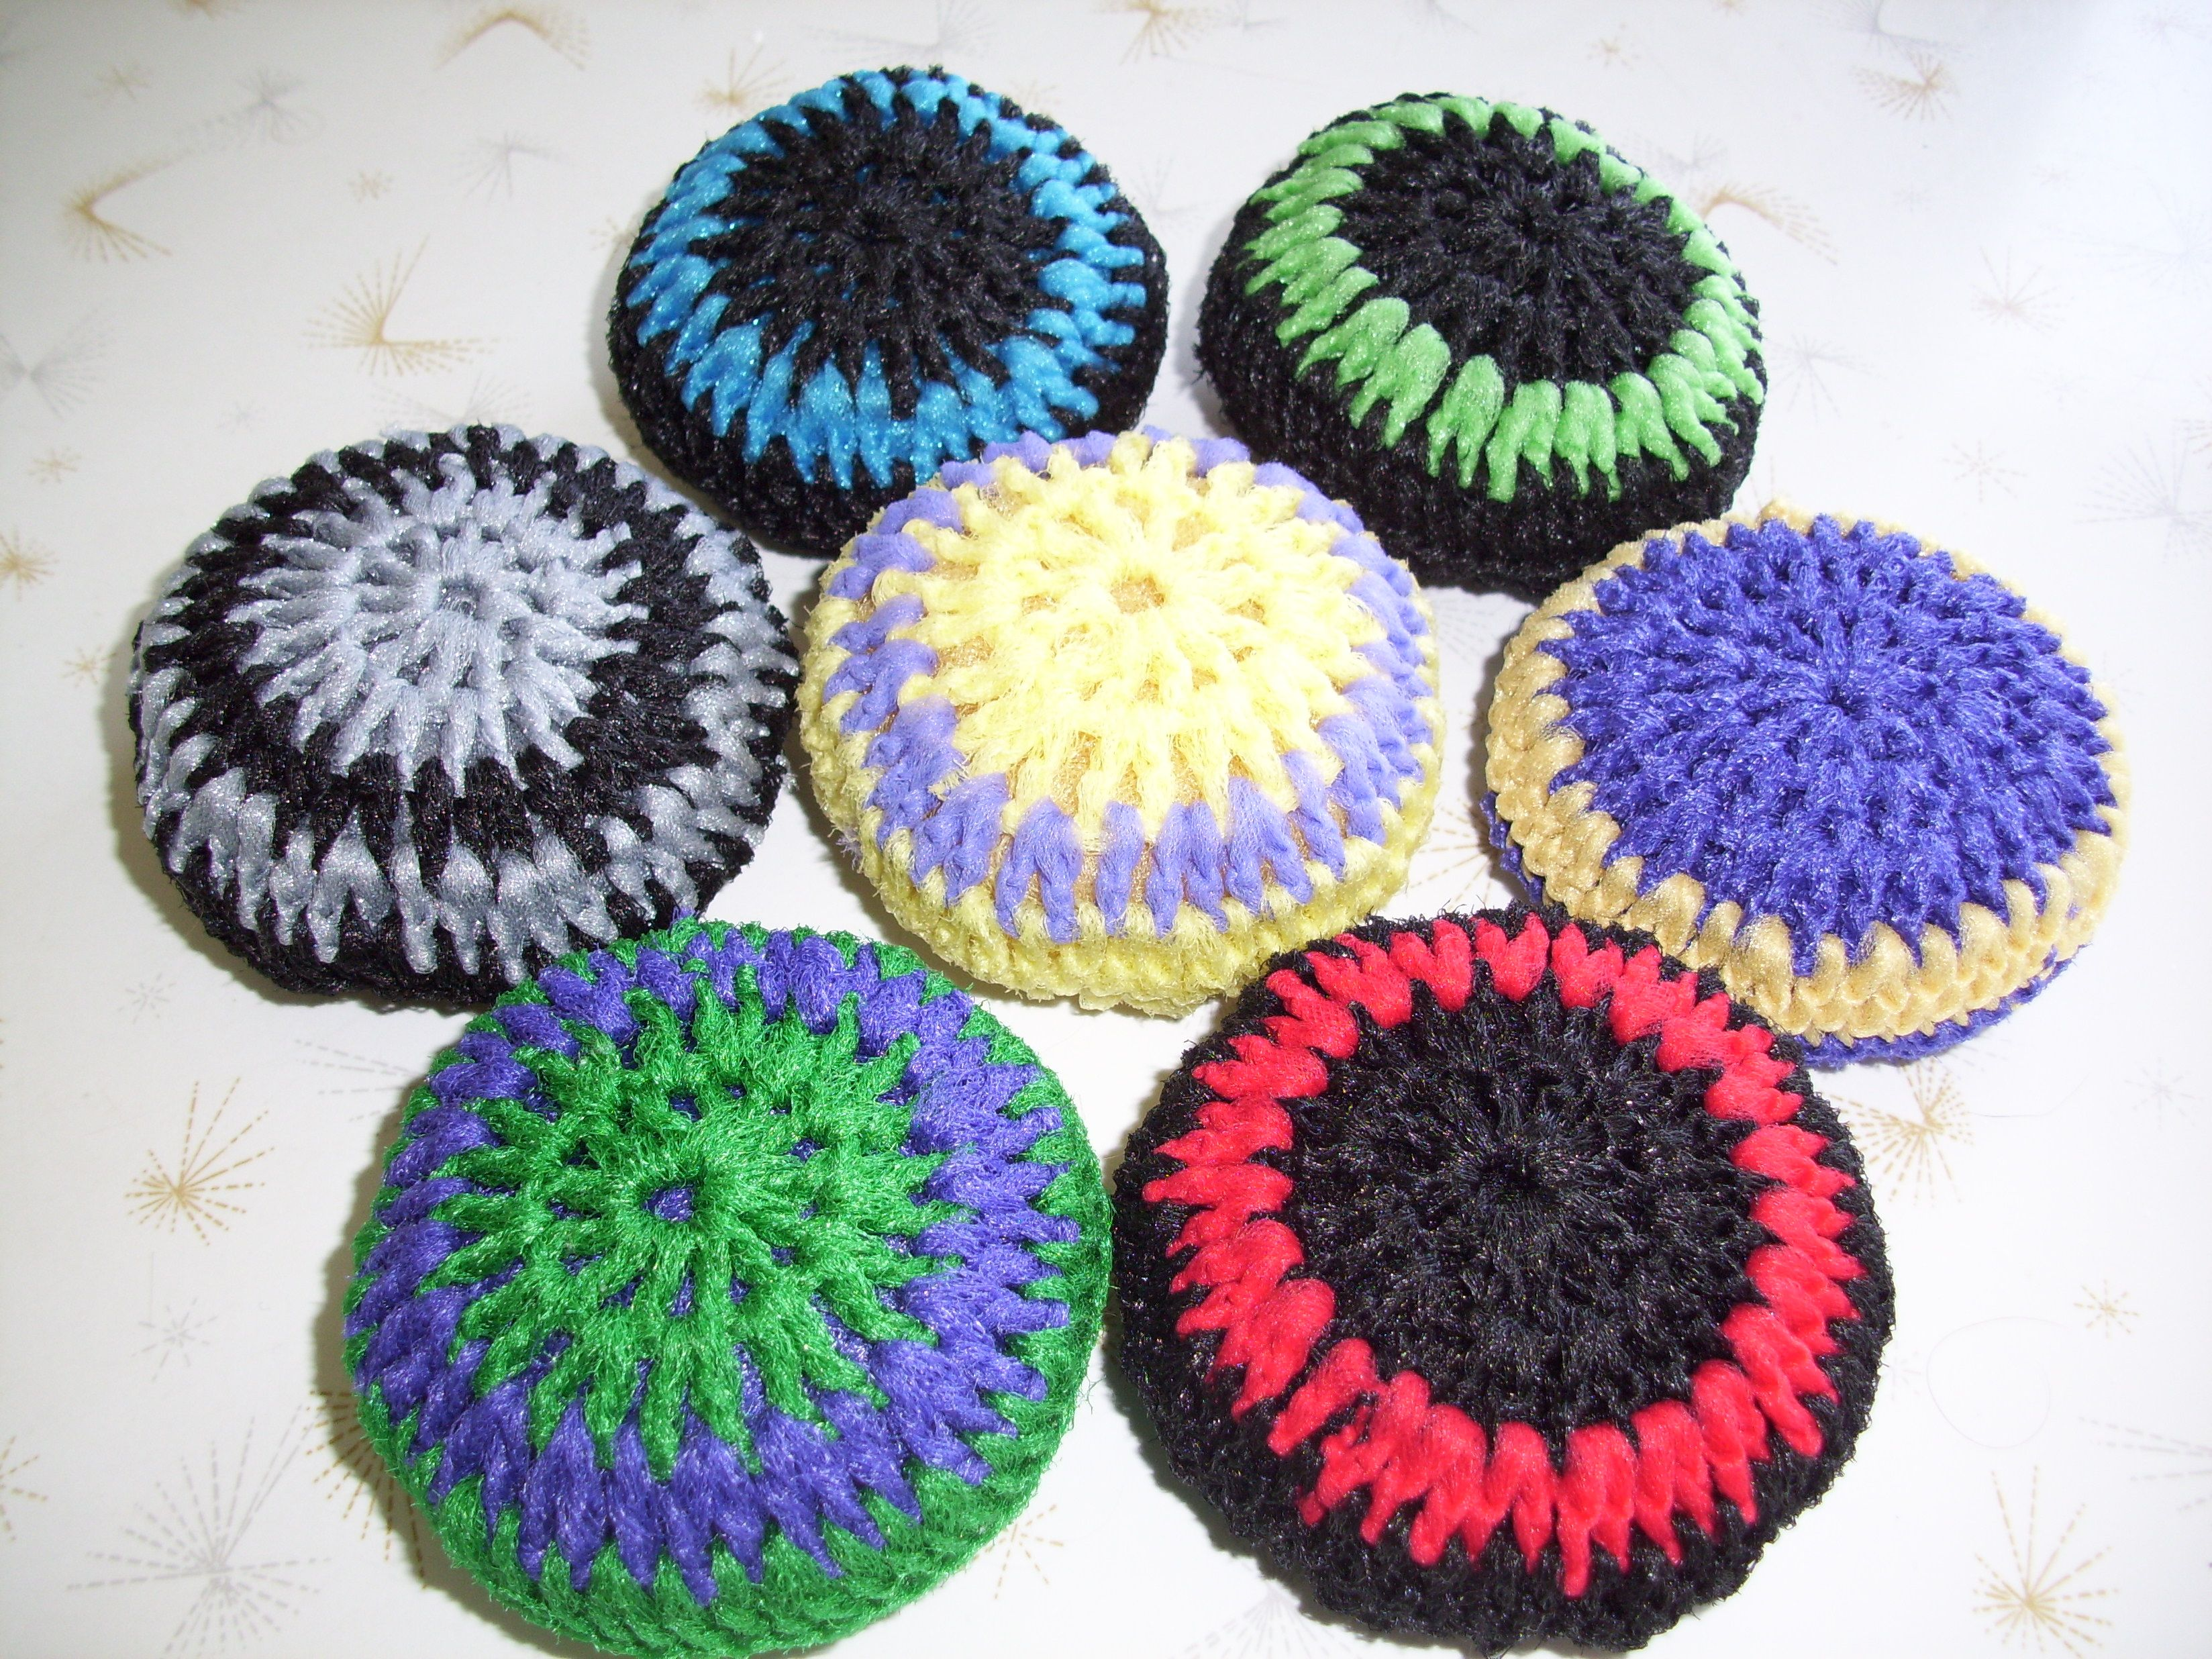 Crocheted Pot Scrubbers Crochet Pinterest